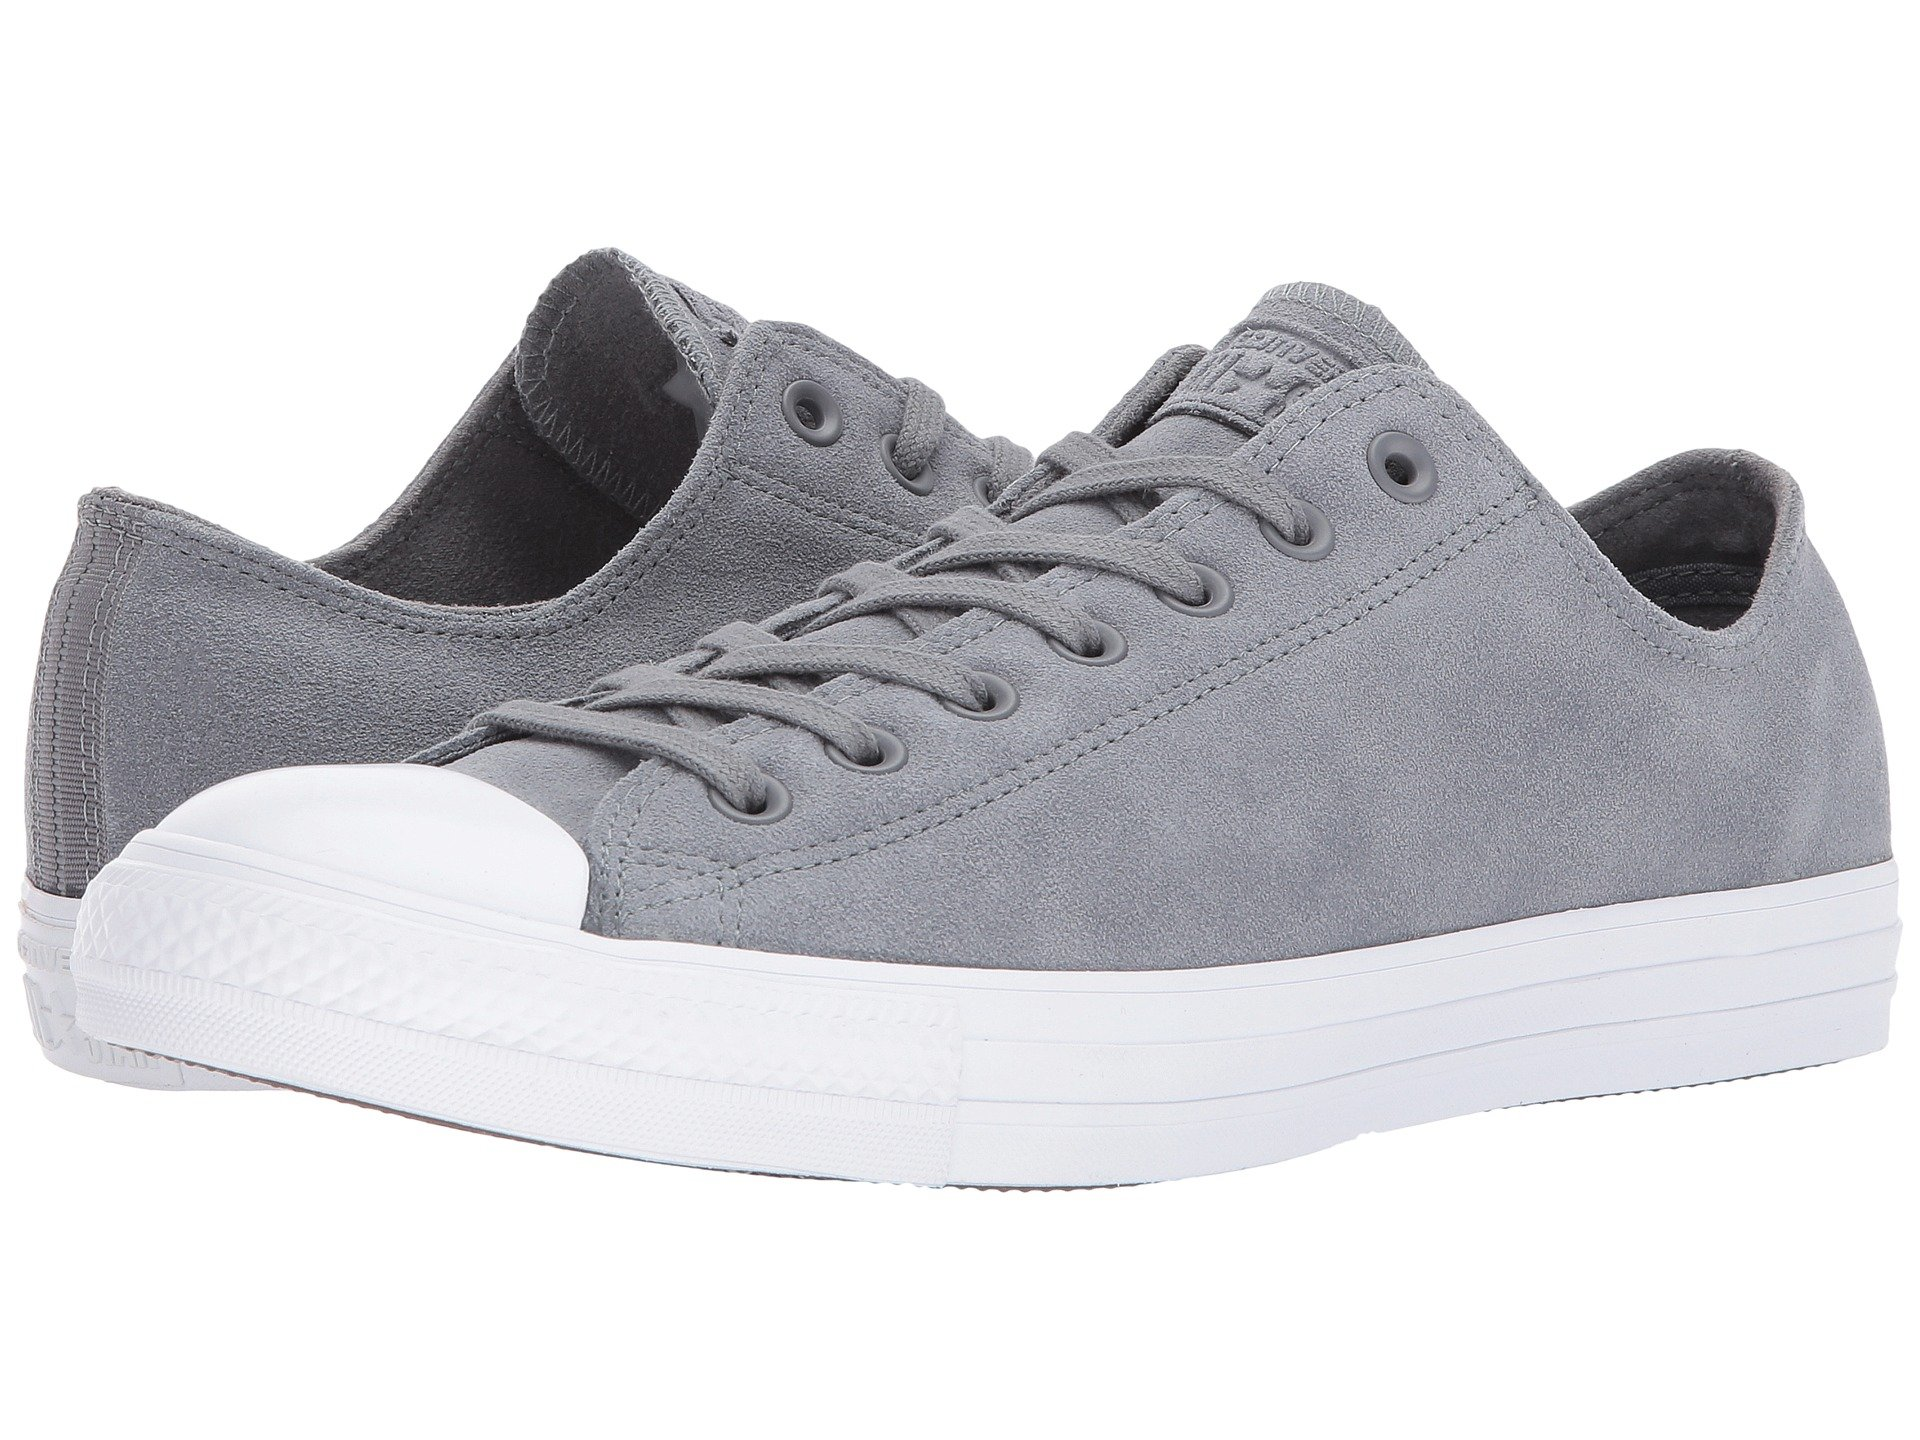 Converse Chuck Taylor 174 All Star 174 Plush Suede Ox At Zappos Com